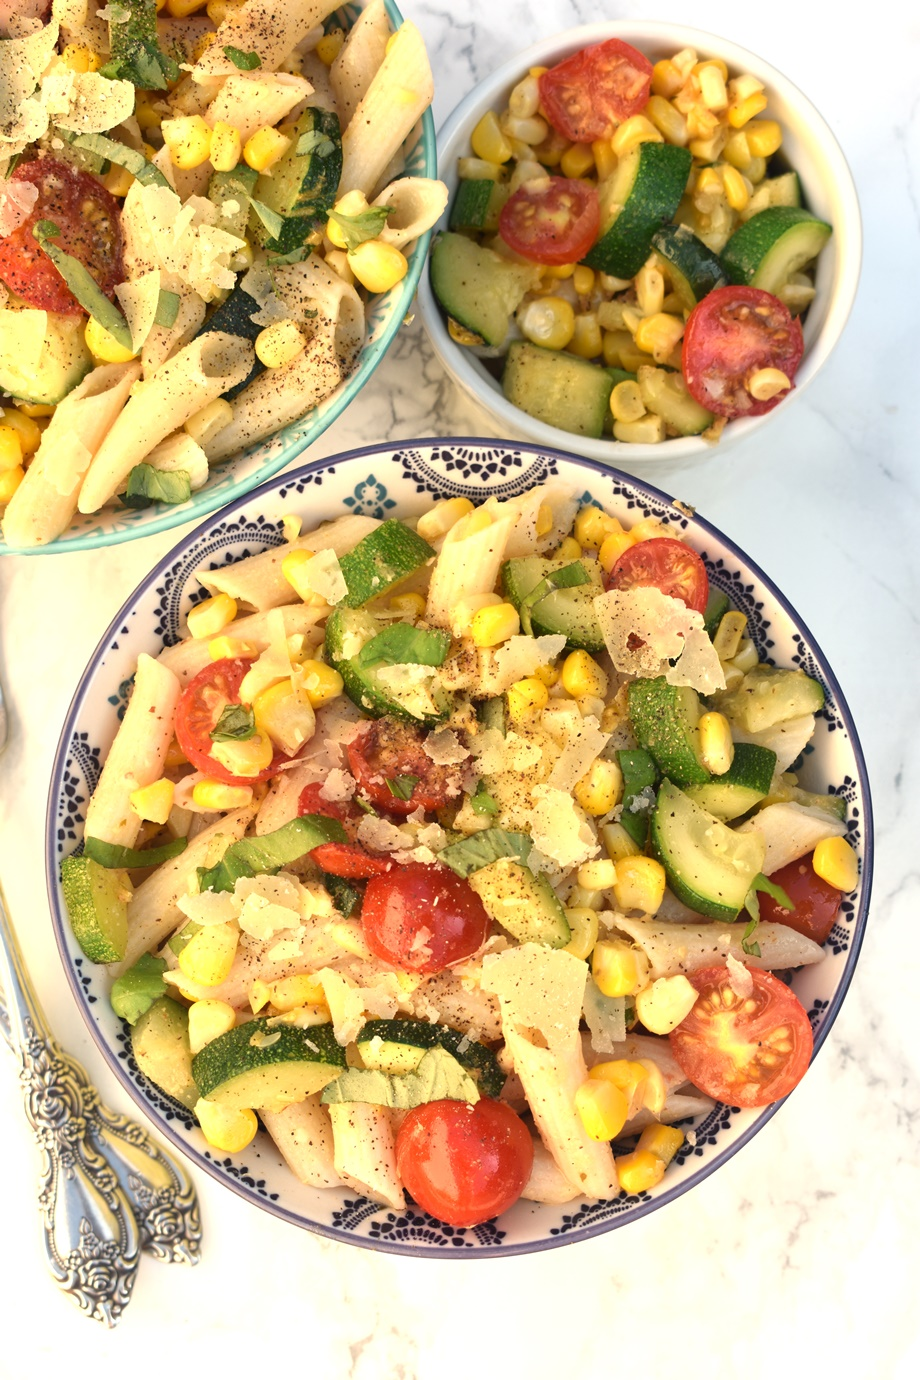 Tomato, Zucchini and Corn Pasta Salad is loaded with fresh sauteed vegetables, shaved parmesan cheese and Caesar vinaigrette for a delicious lunch that is perfect for meal prep!